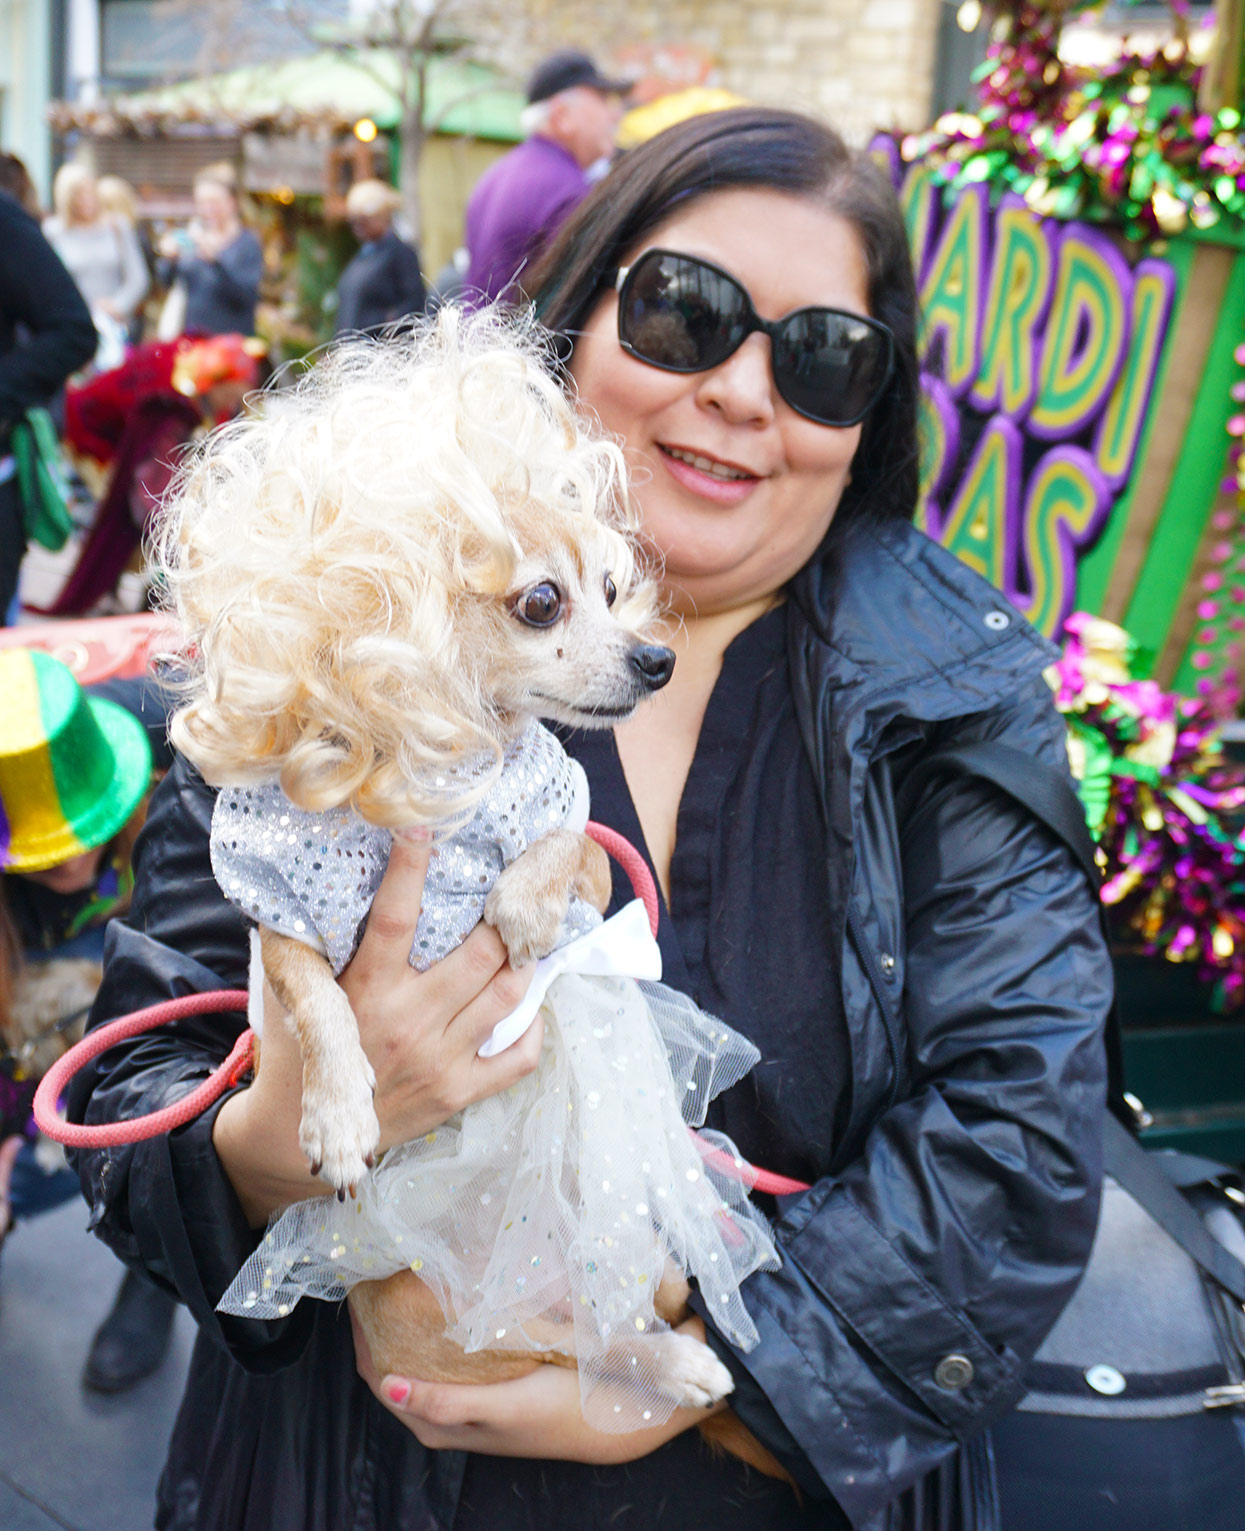 Mutti-Gras-Parade-Bitsy-Los Angeles, CA (2/22/20)